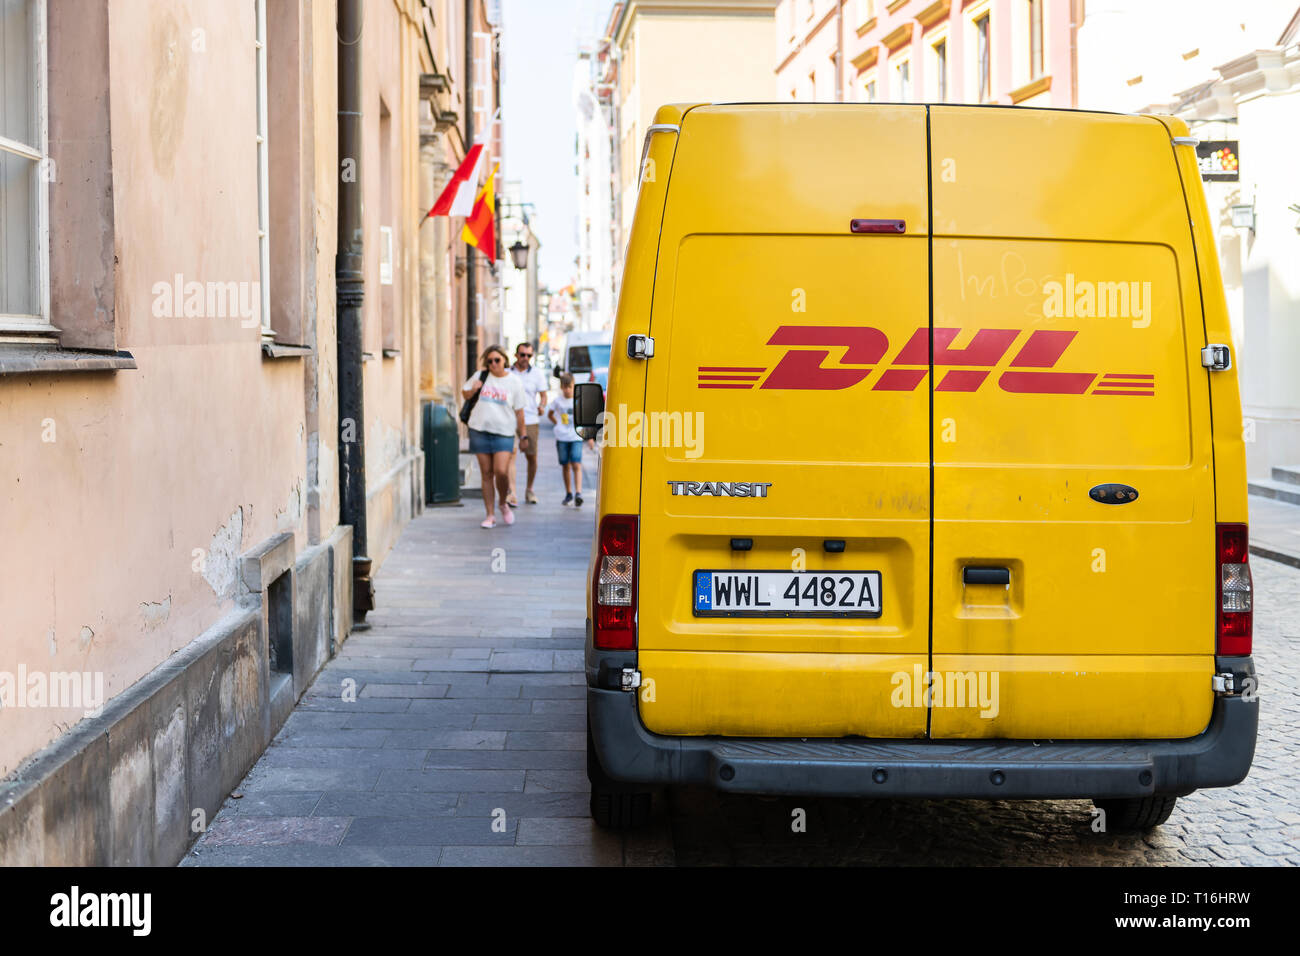 Warsaw, Poland - August 23, 2018: Old town street with closeup of DHL delivery truck in city with yellow color and sign - Stock Image